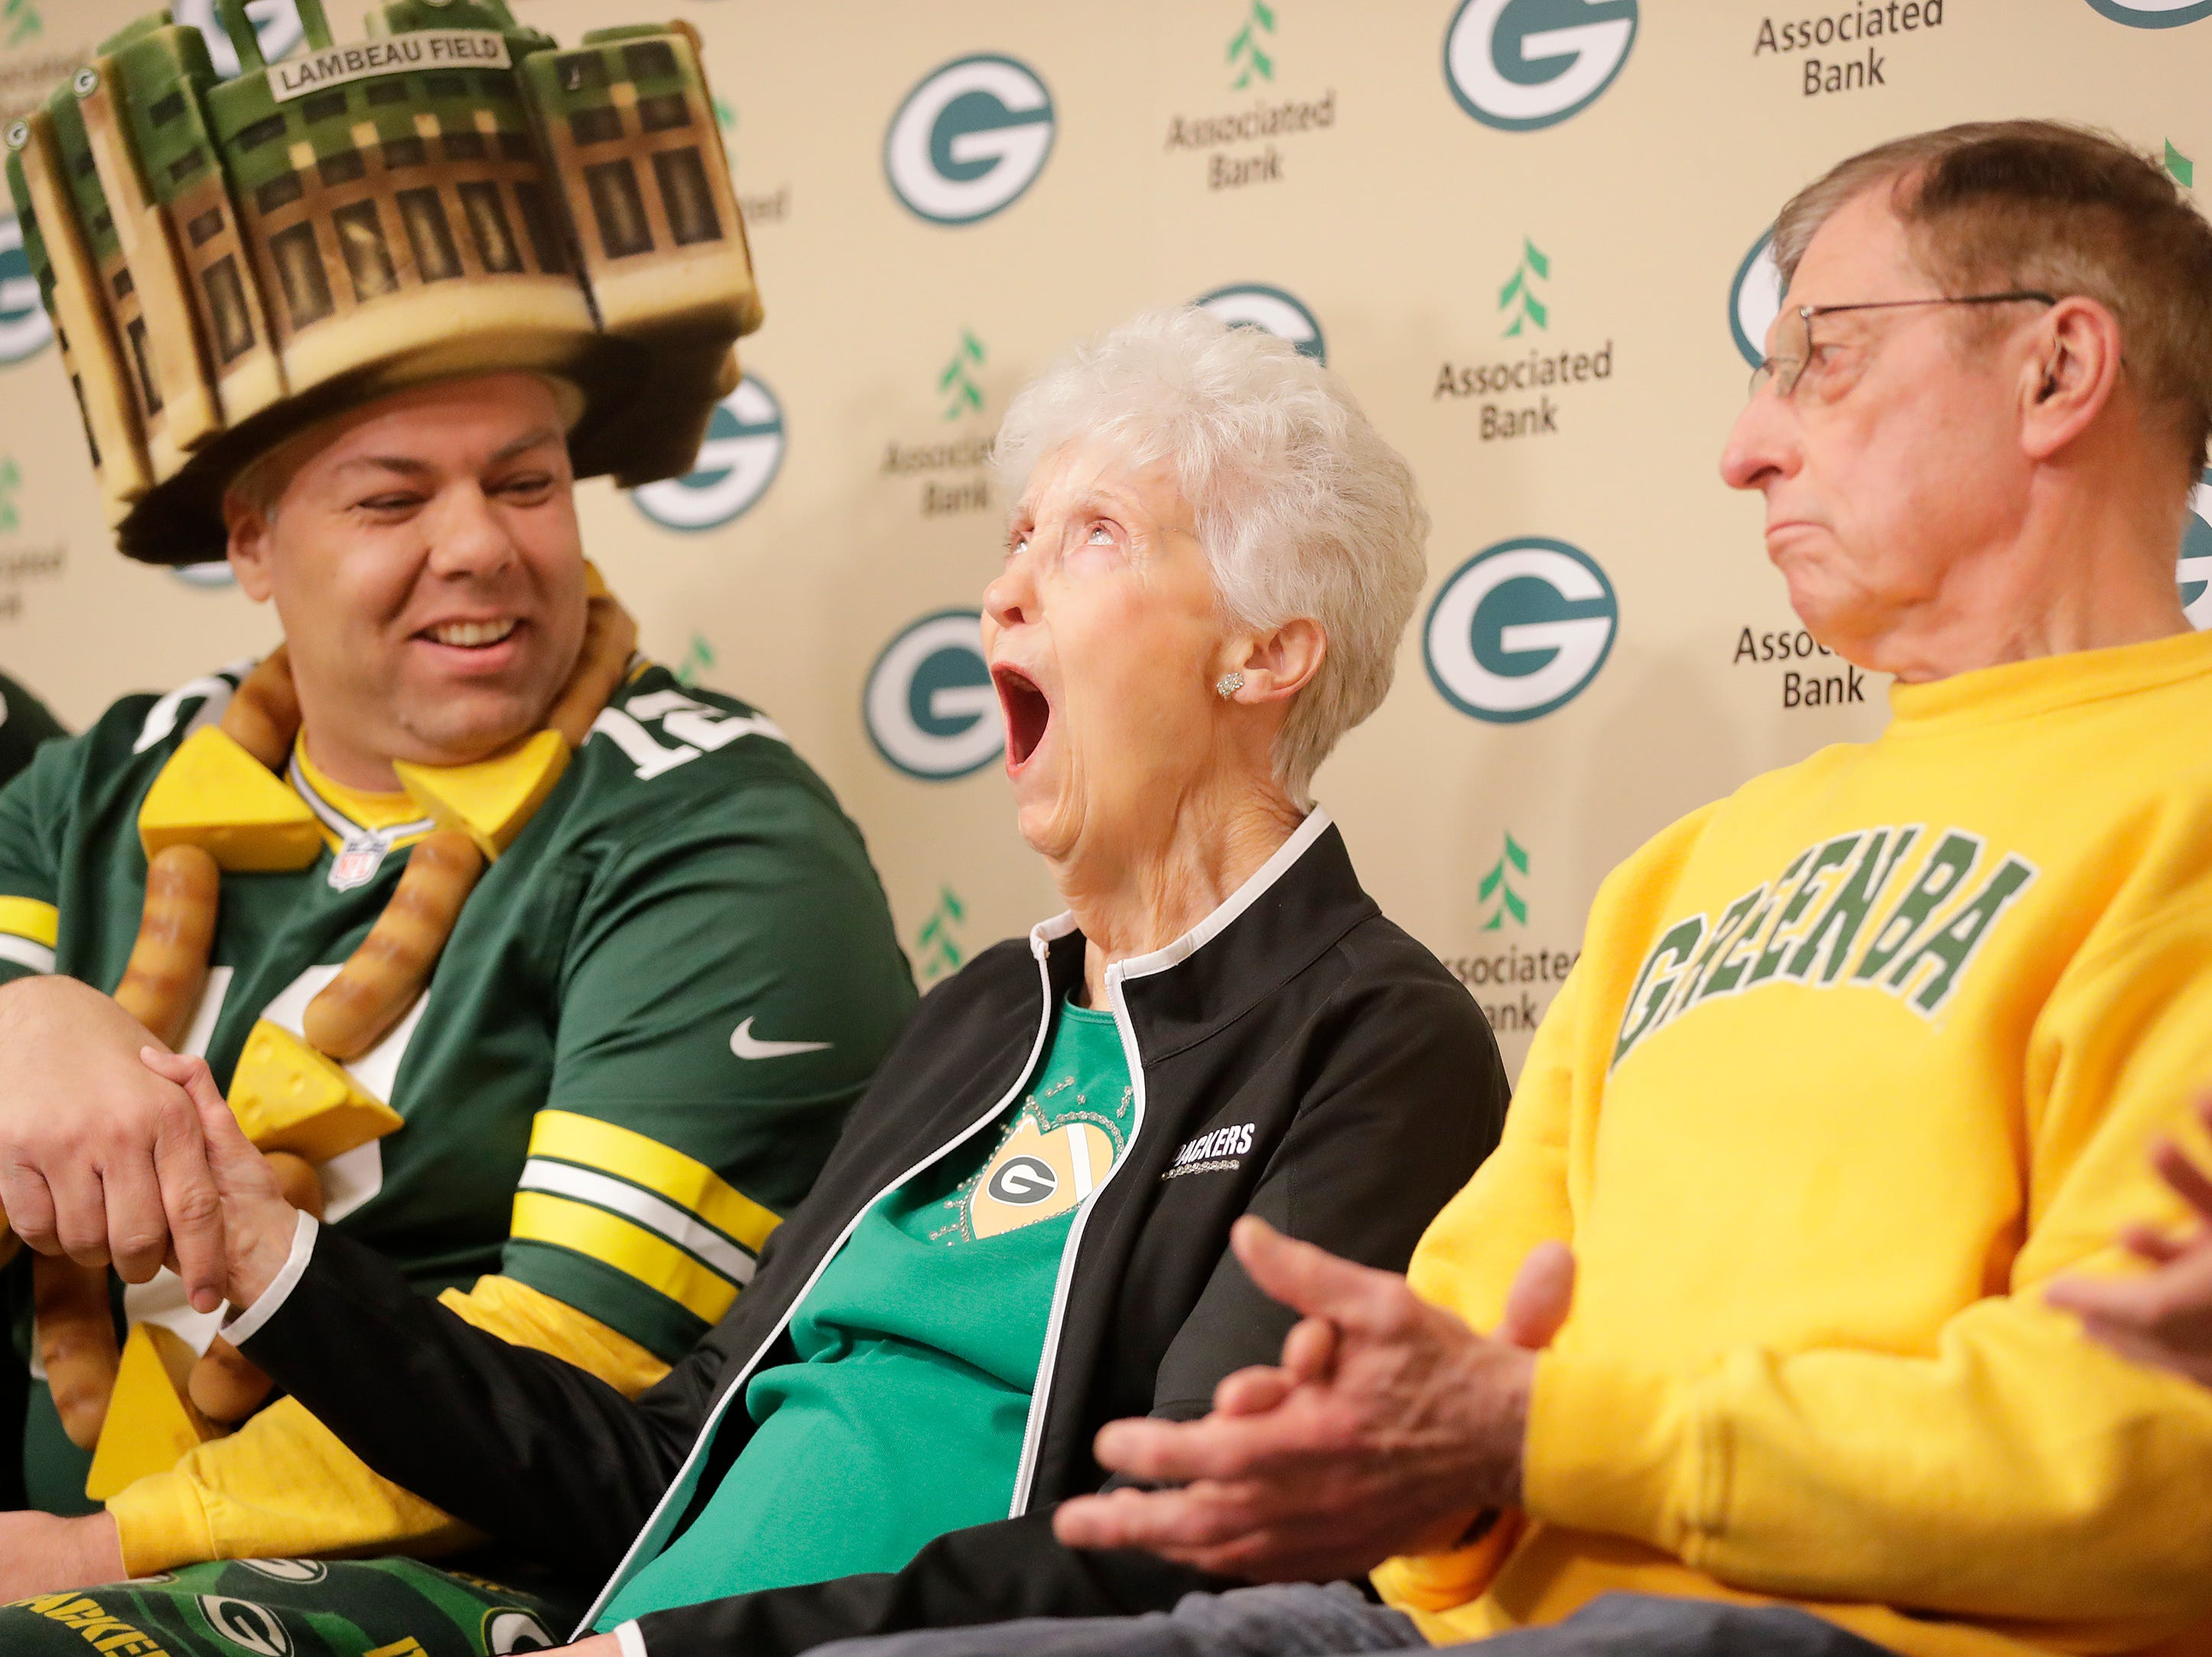 Marguerite Bachhuber of Green Bay reacts as she is as honored as the 20th member of the Green Bay Packers fan hall of fame at Lambeau Field on Tuesday, February 13, 2018 in Green Bay, Wis.